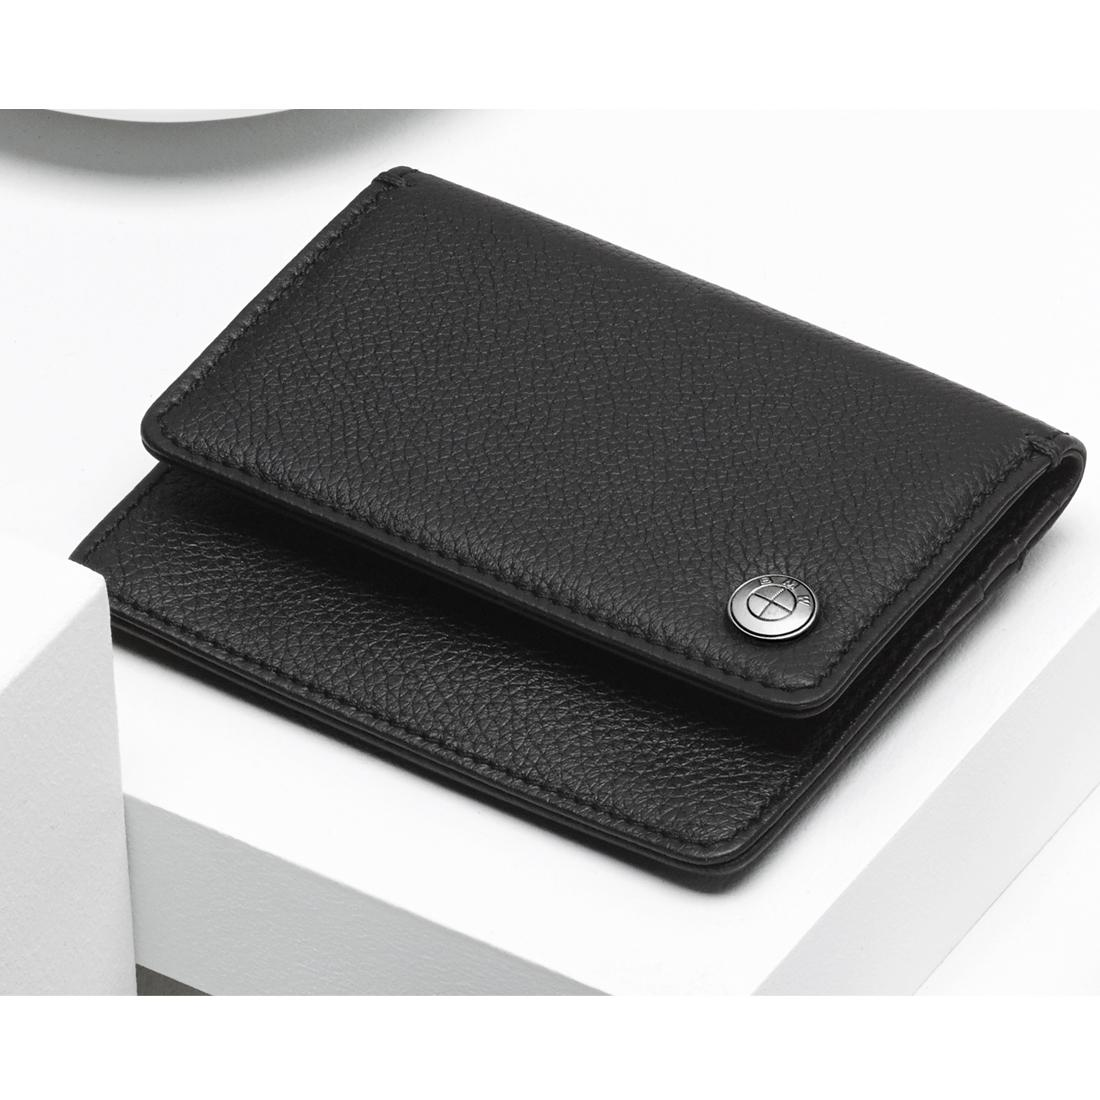 shopbmwusa: bmw credit card and business card holder with